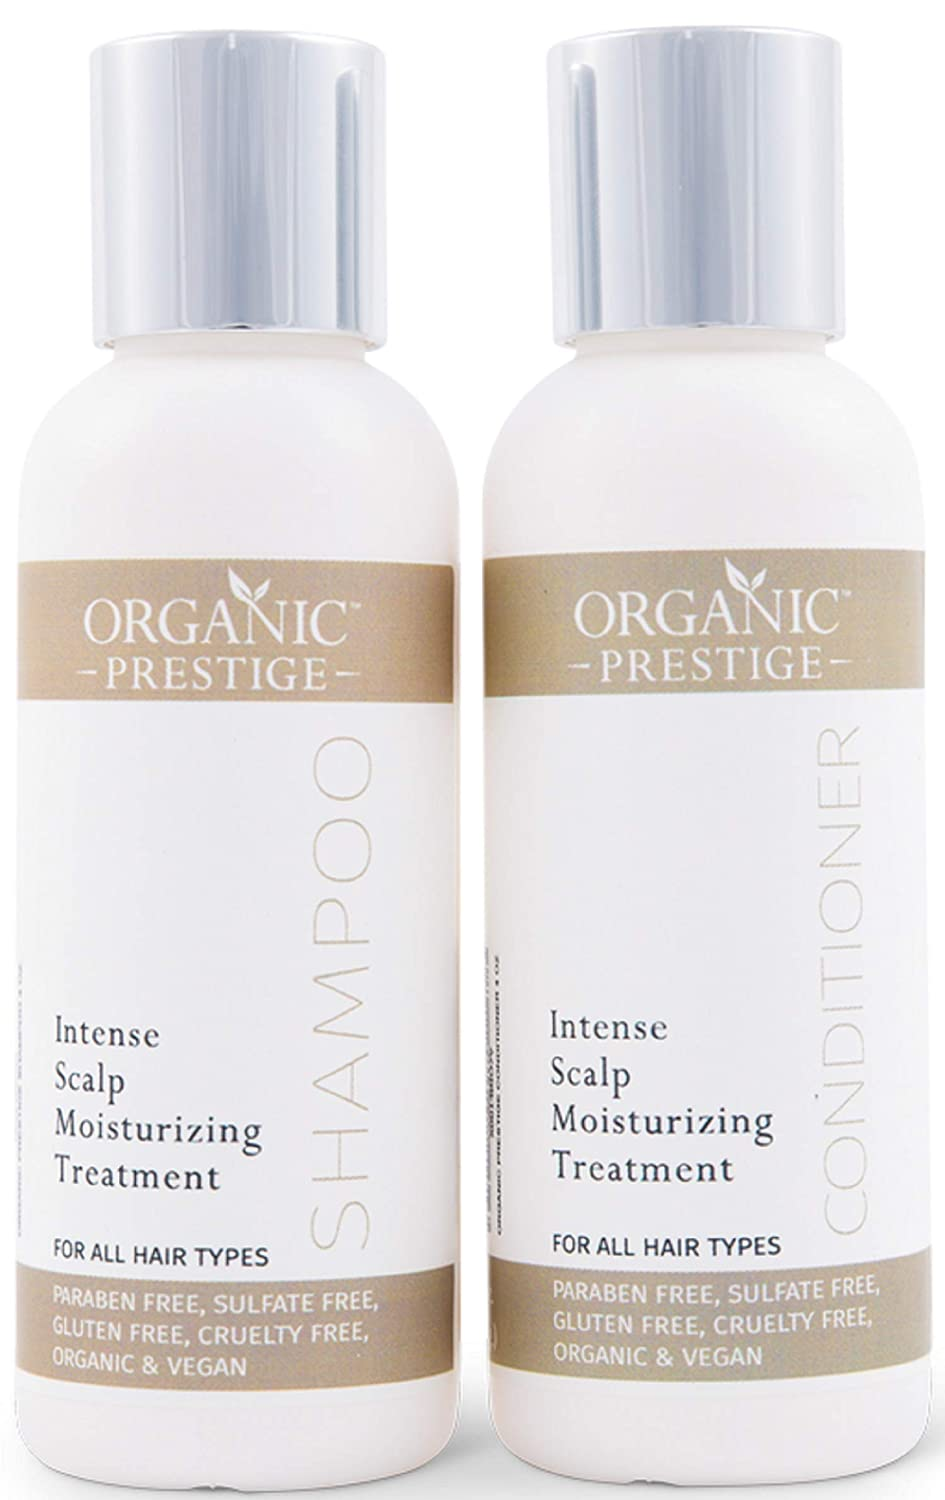 Luxury Shampoo & Conditioner Set - Natural & Organic With Coconut Oil & Aloe Vera - Volumizing Treatment for Hair Loss & Split Ends - Sulfate Free Shampoo & Conditioner for Color Treated Hair (4 oz)